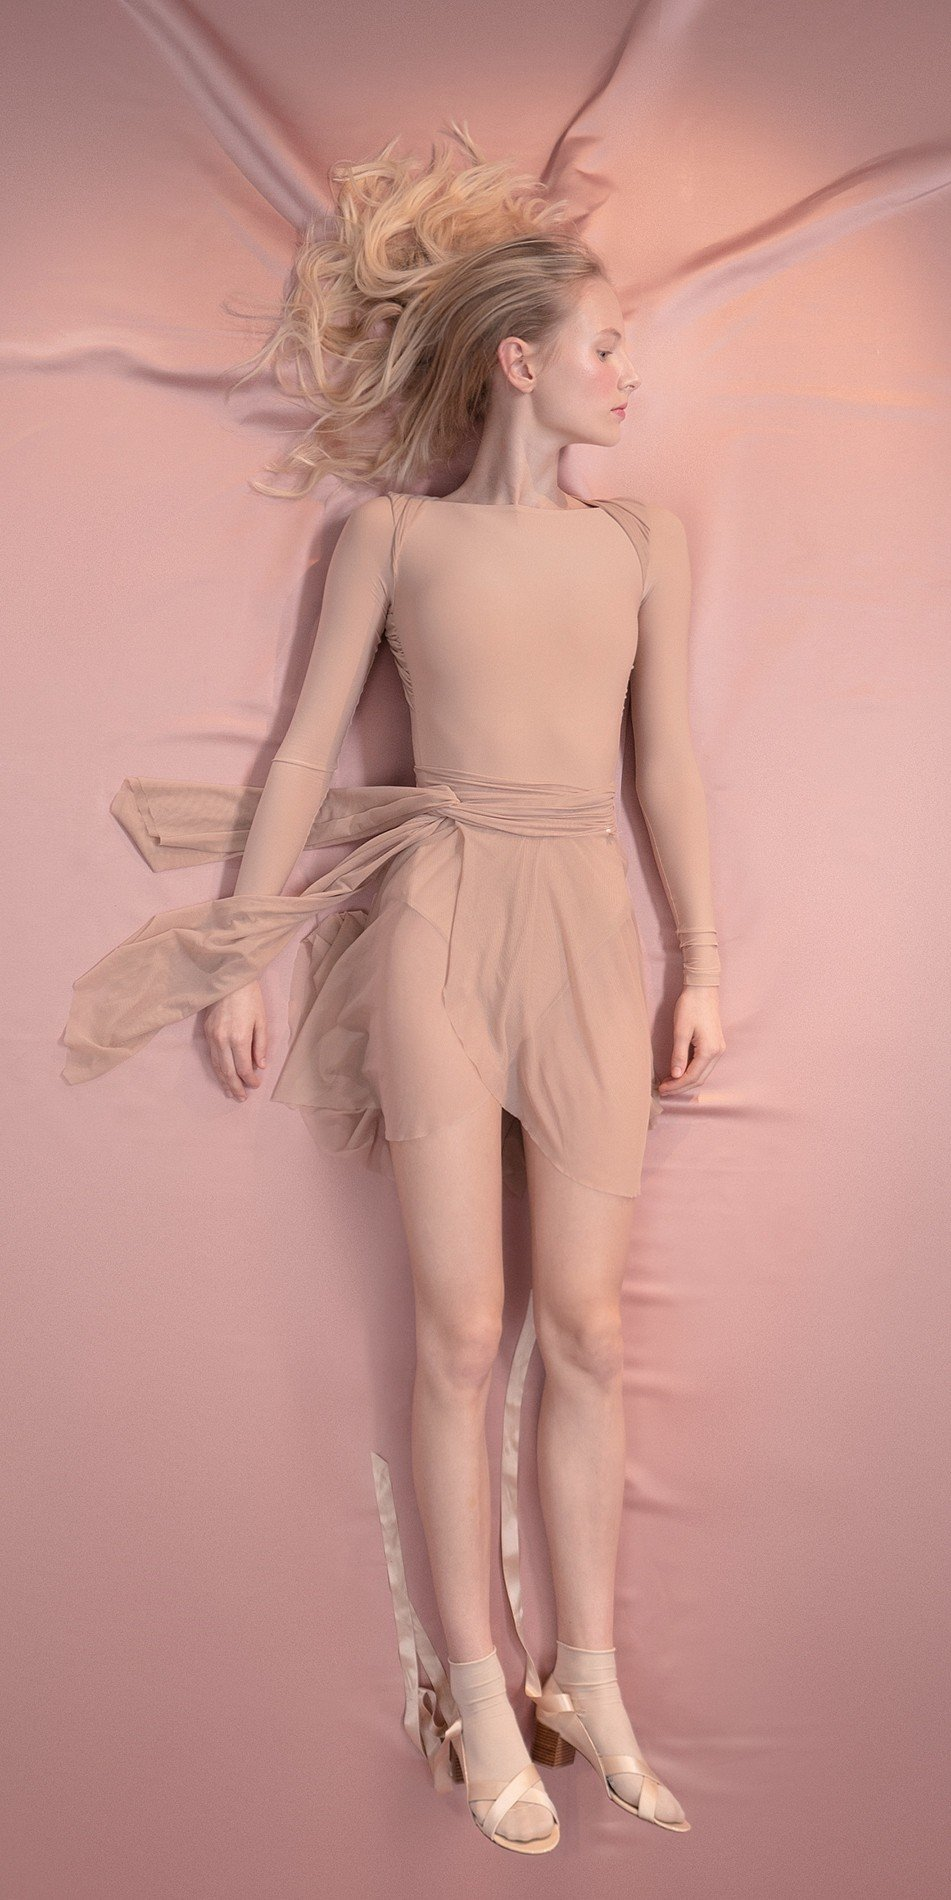 GRES knotted20back20leotard20with20sleeves nude 1 r 1